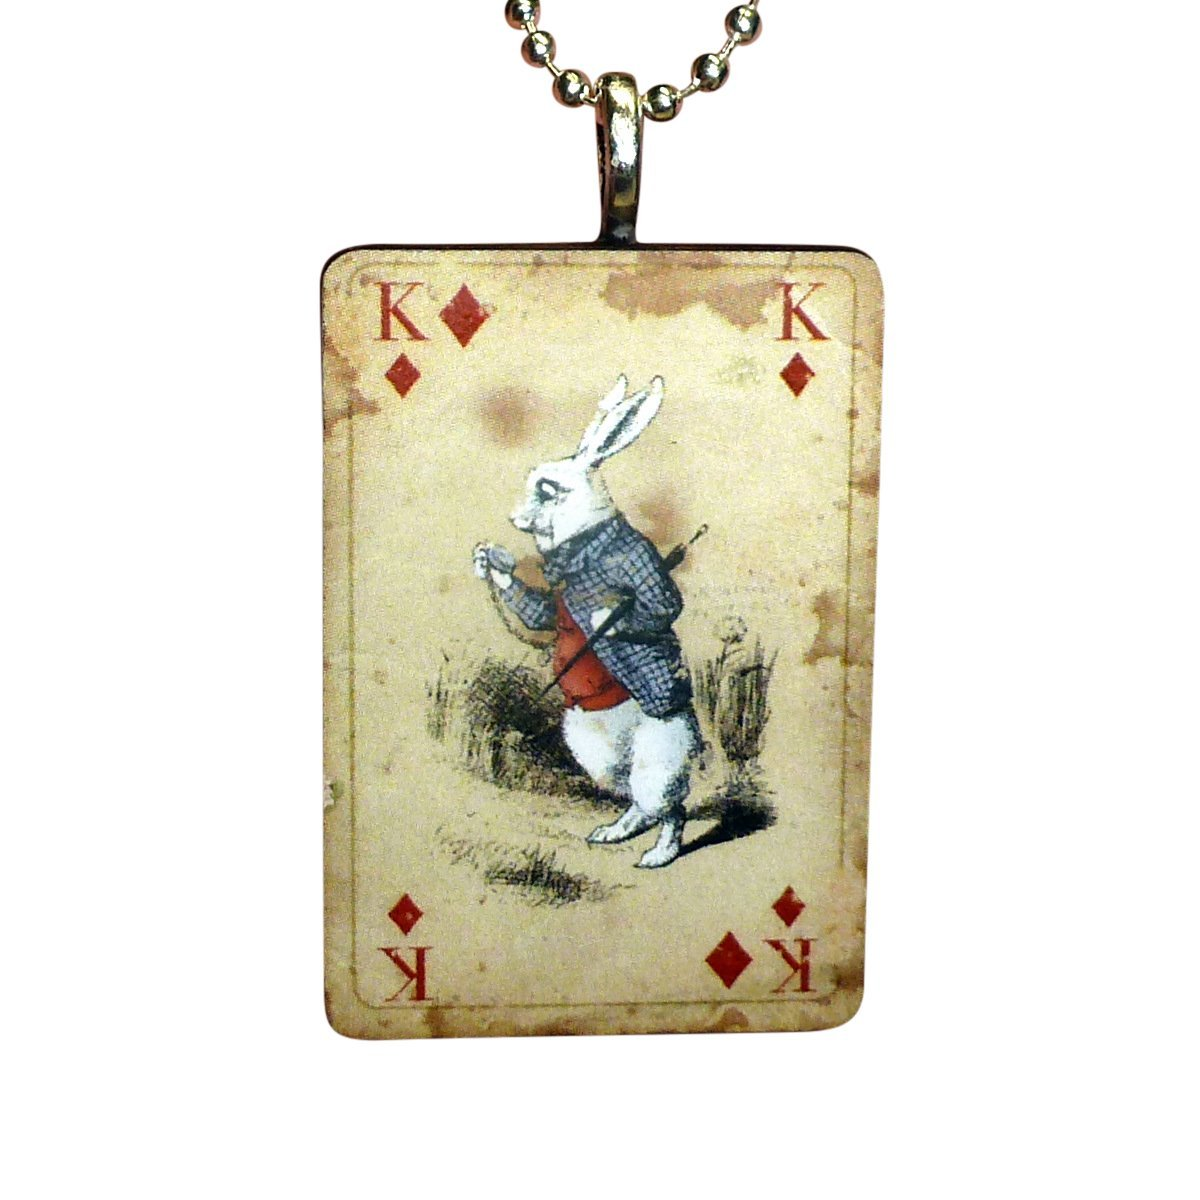 UMBRELLALABORATORY Alice in Wonderland Necklace-Jewelry in Vintage Look Style Comes if Box